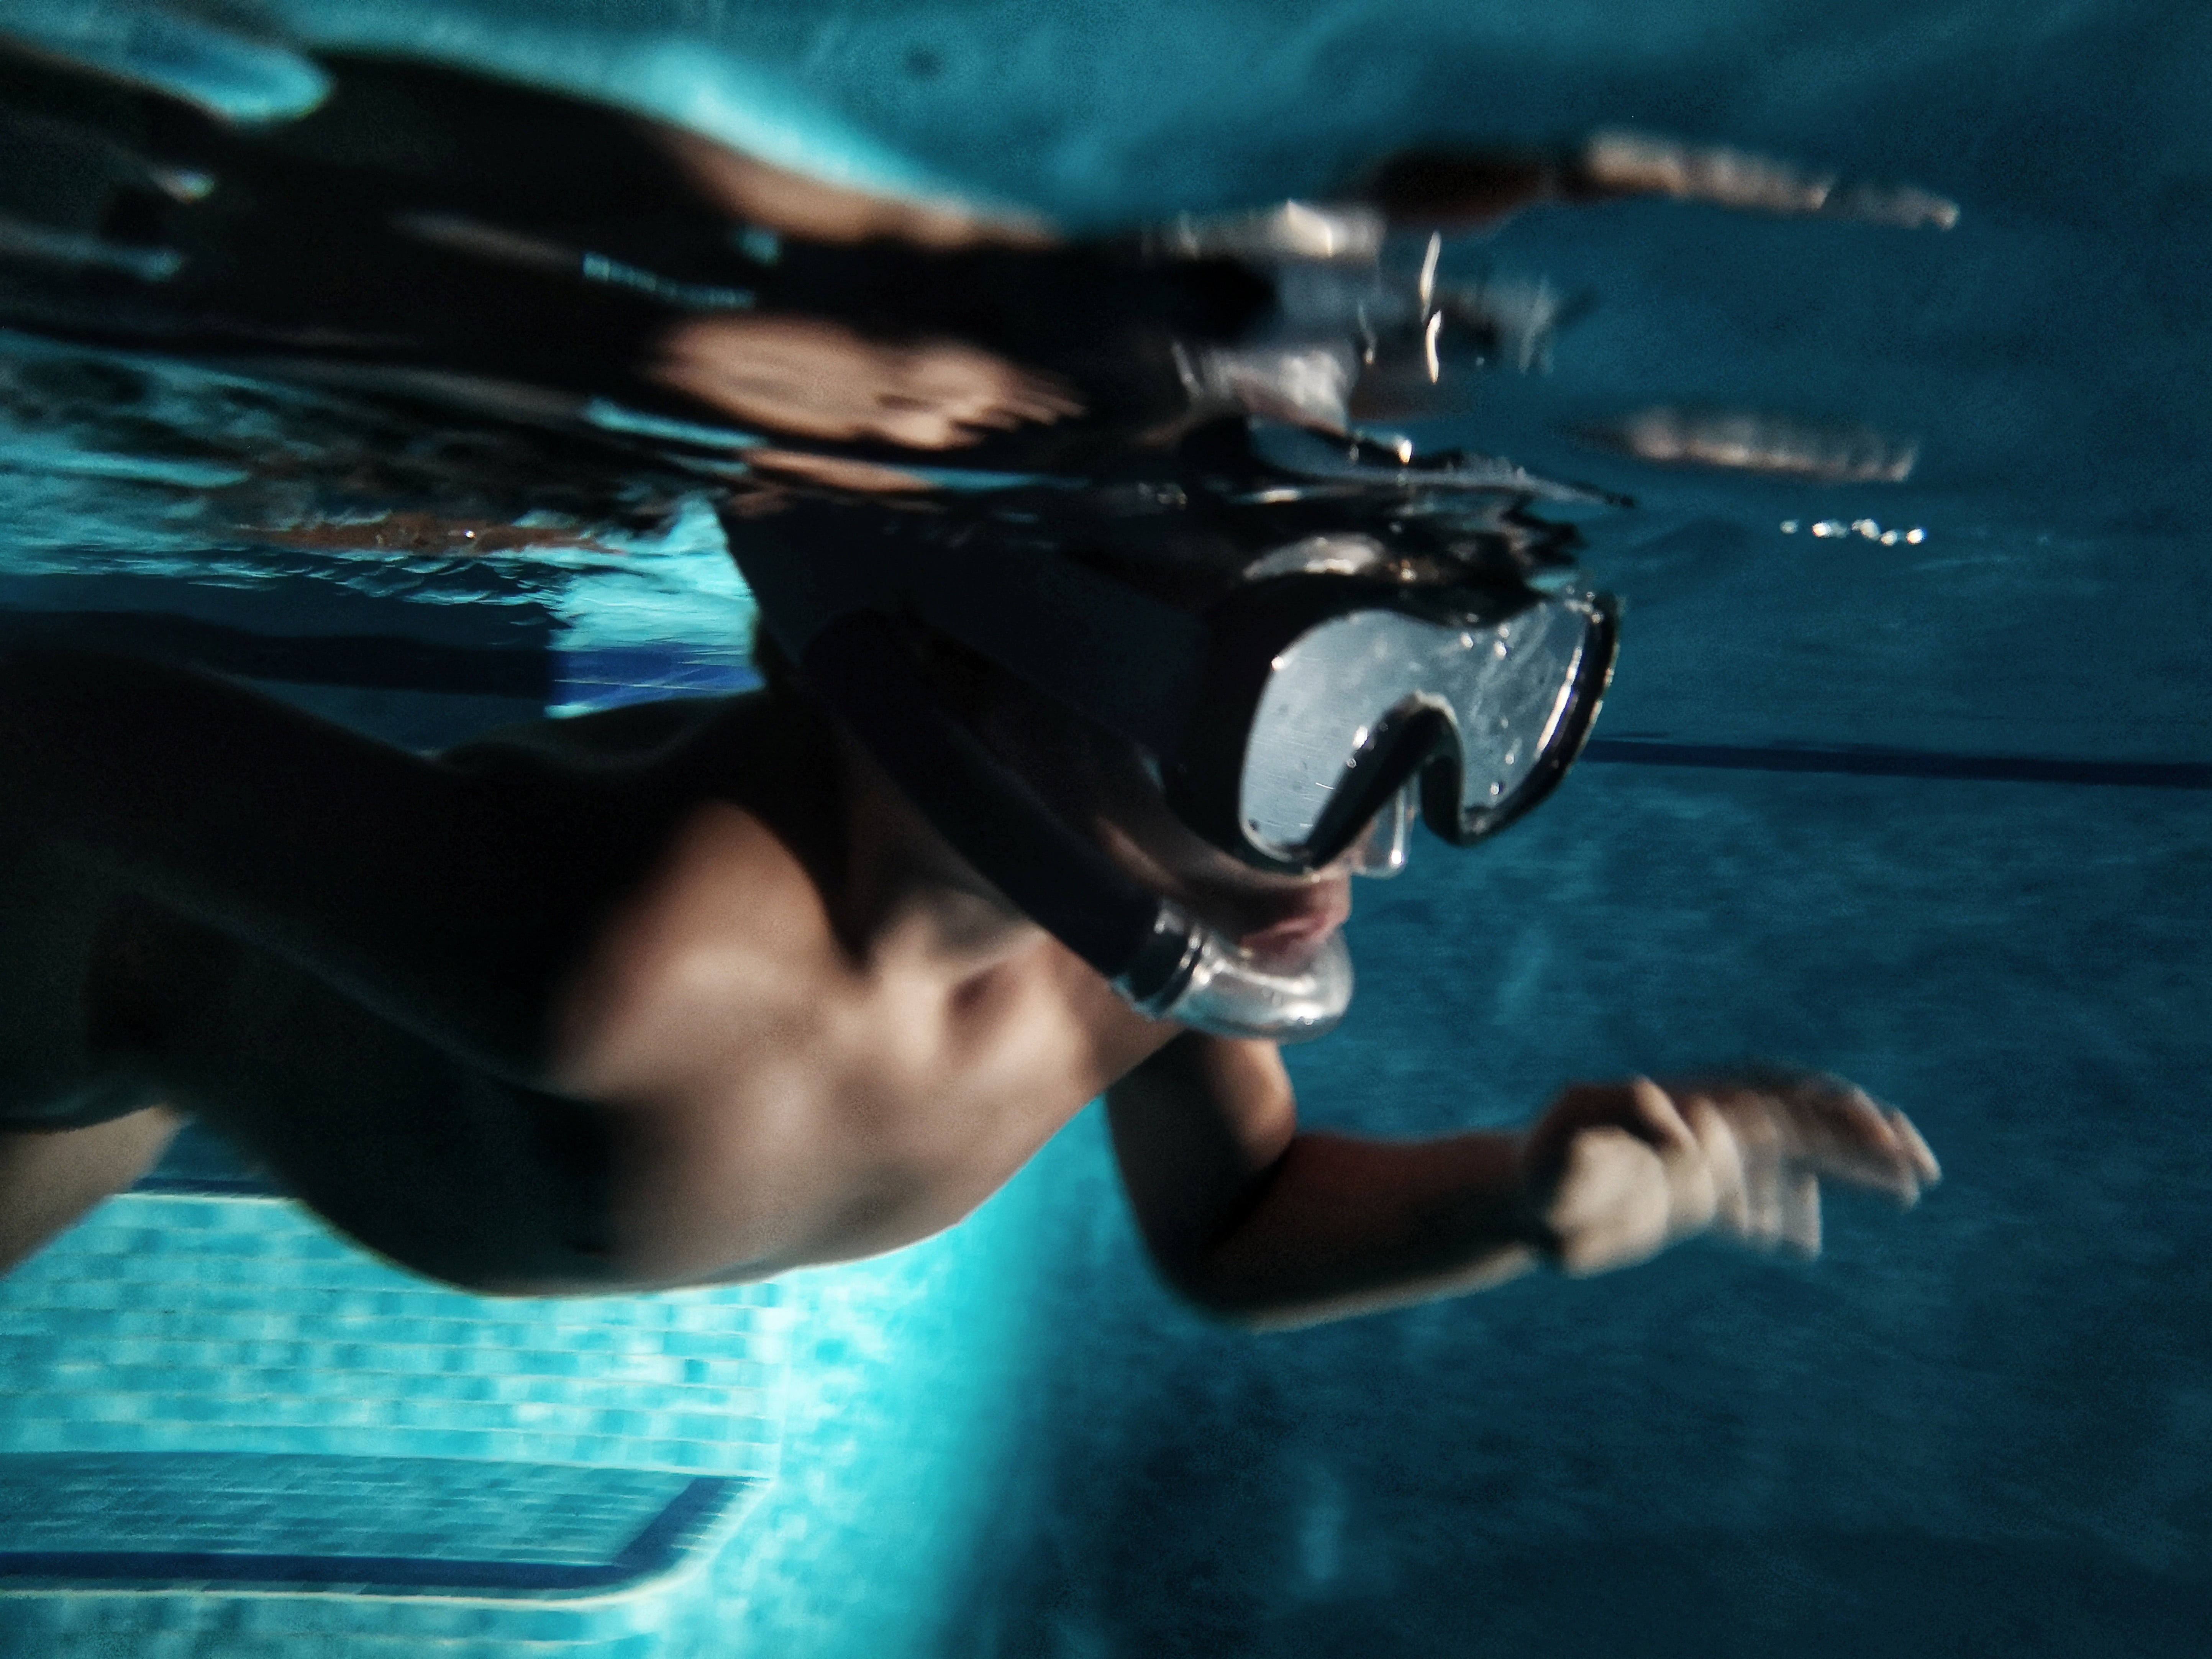 A diver with goggles on swims under the water   Photo: Unsplash/Alan Angelats